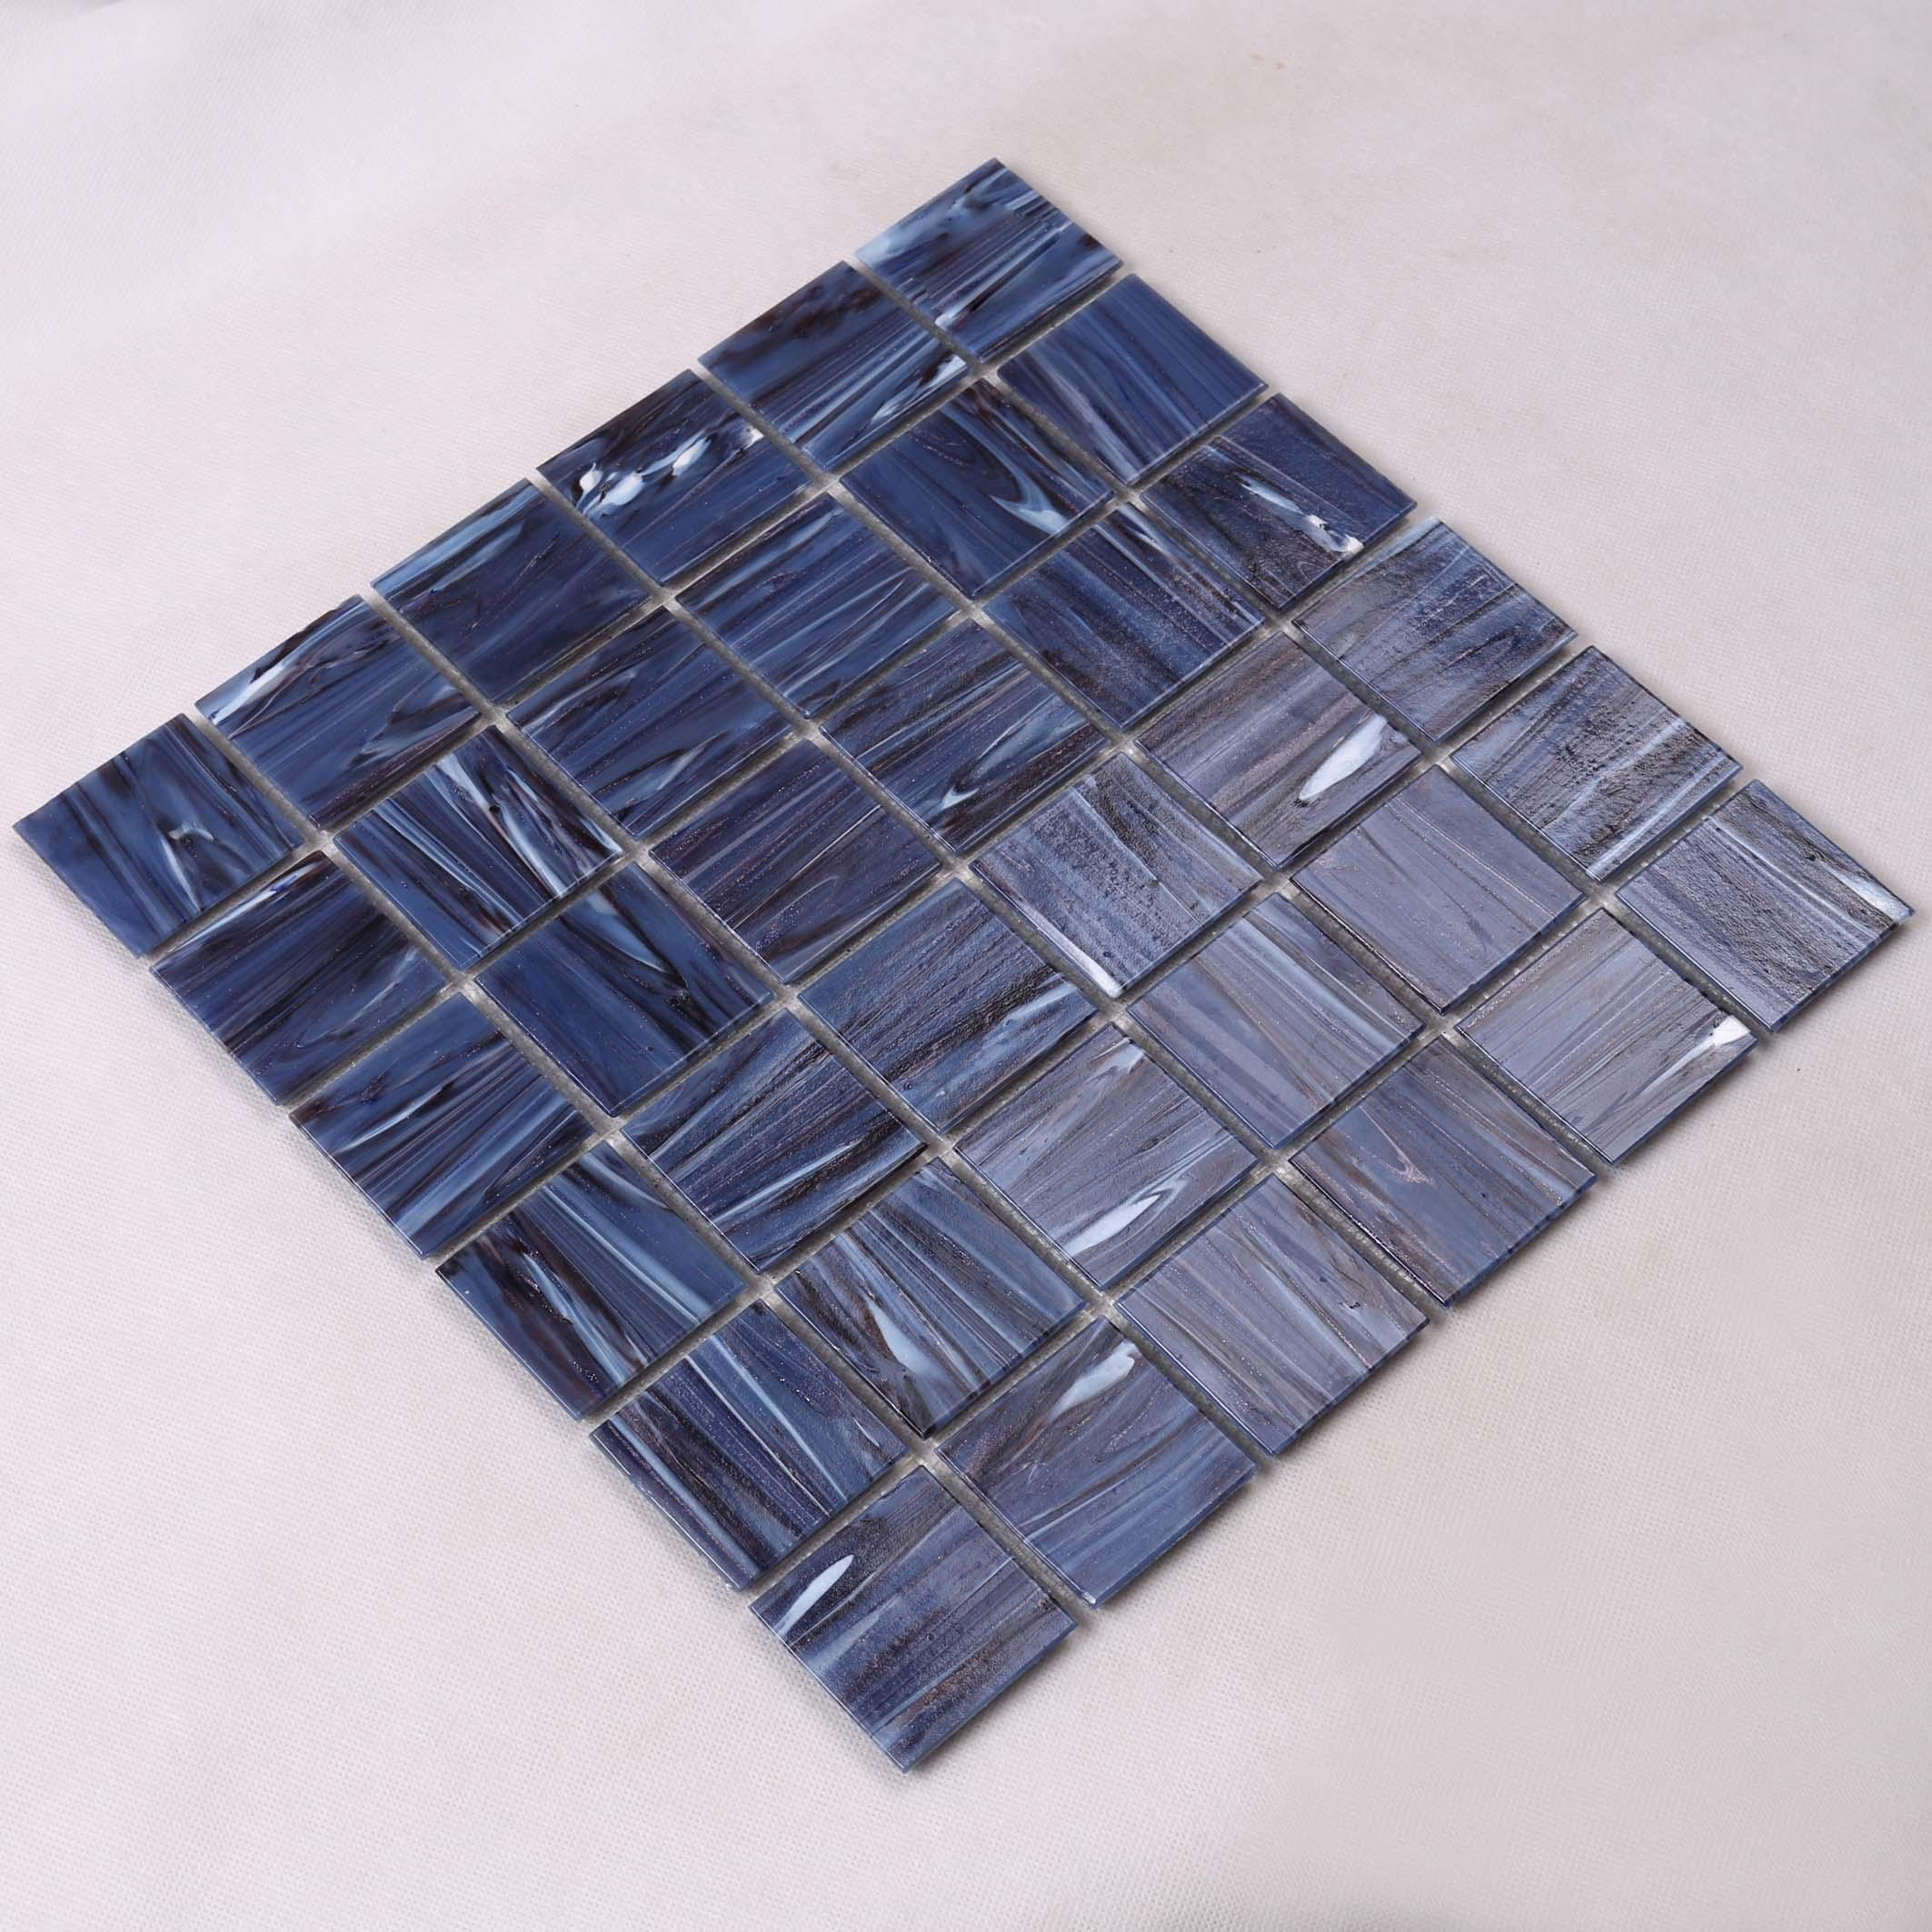 Heng Xing waterline grey pool tiles supplier for spa-3